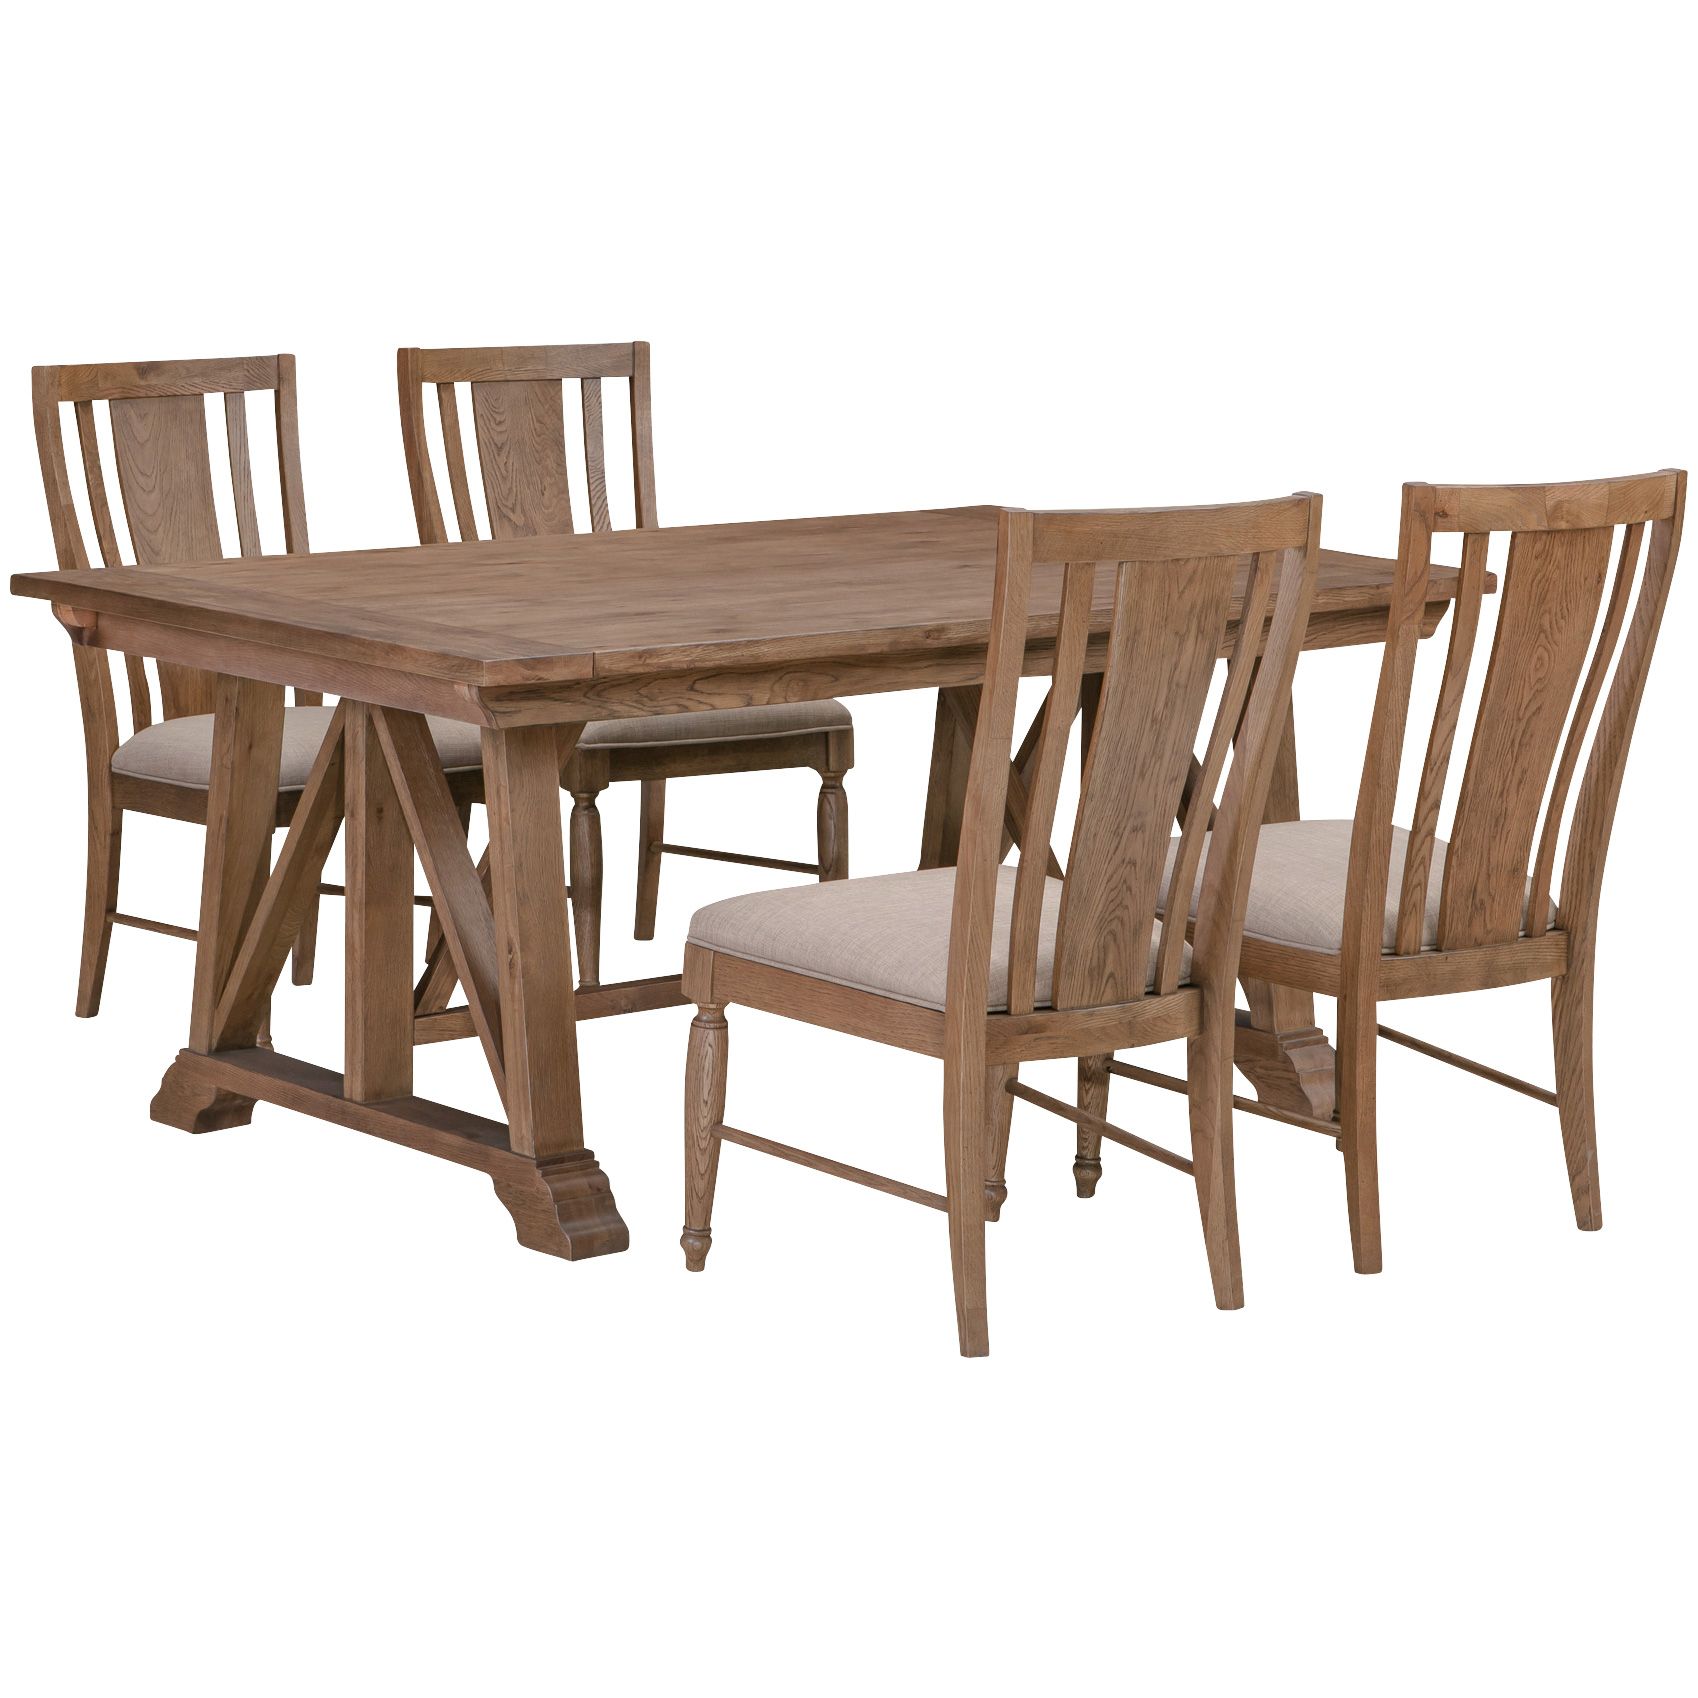 America | McMillian Heights Tawny 5 Piece Trestle Dining Set | Red